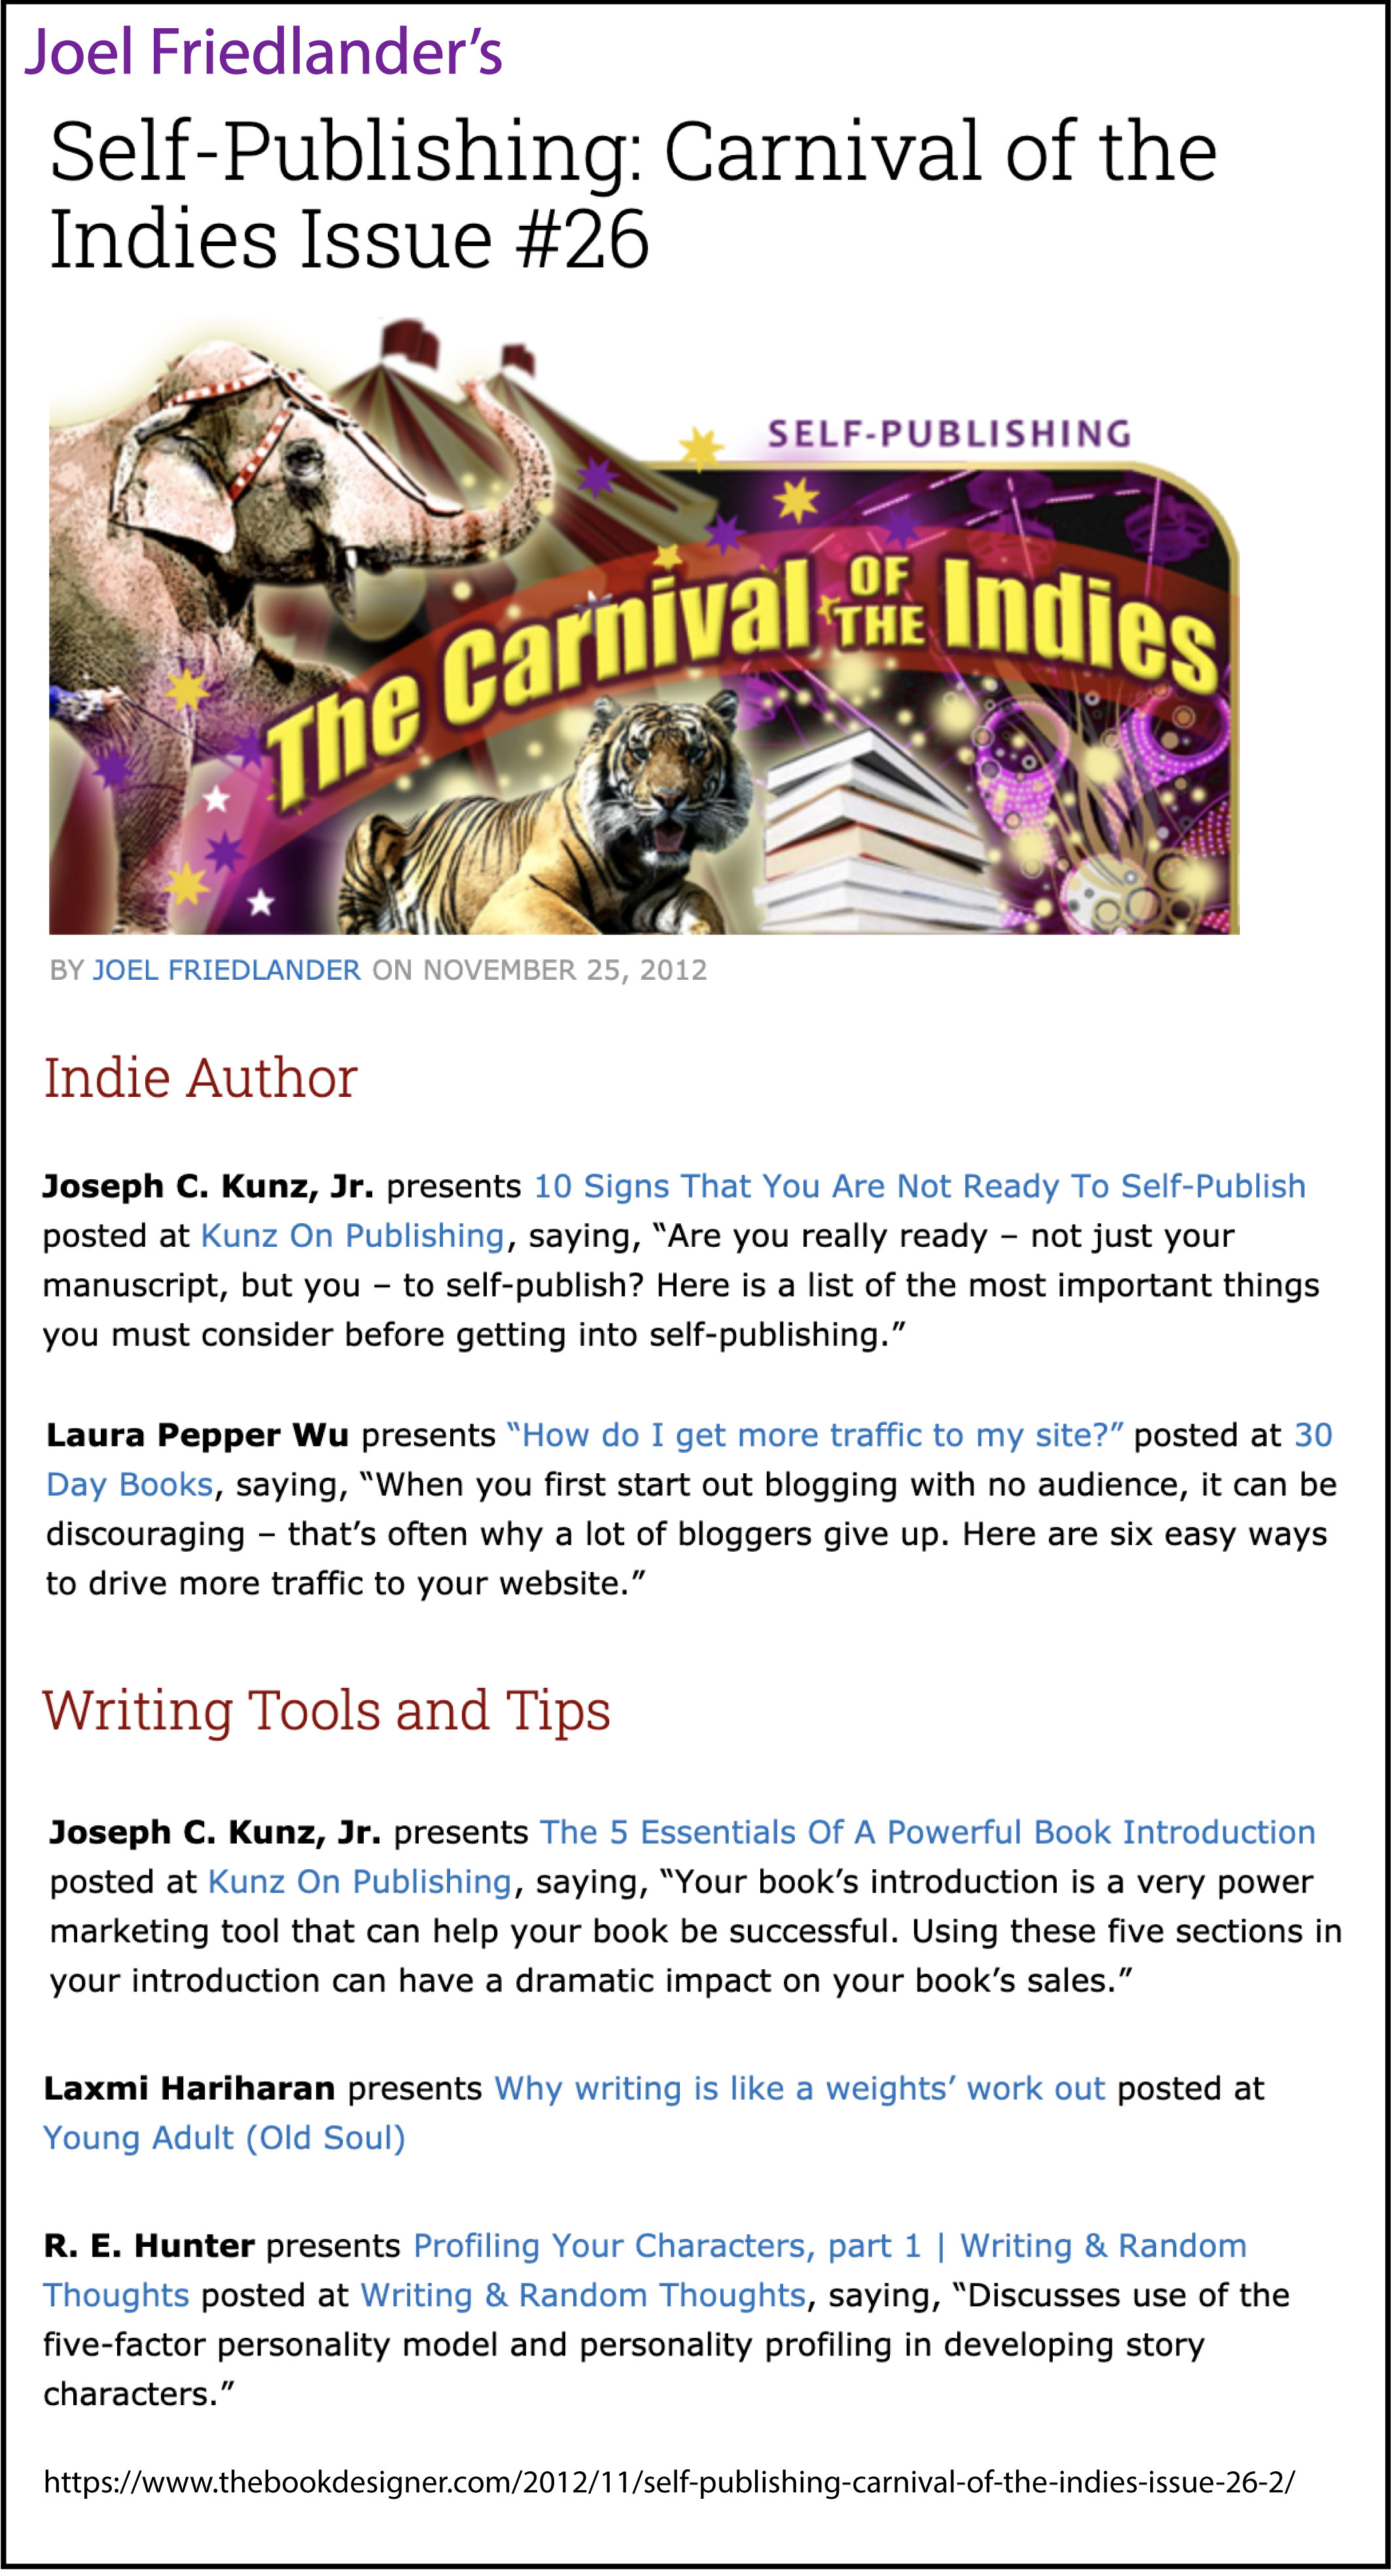 Thank you to Joel Friedlander of the BookDesigner.com for linking to this article from his website Carnival Of The Indies #26